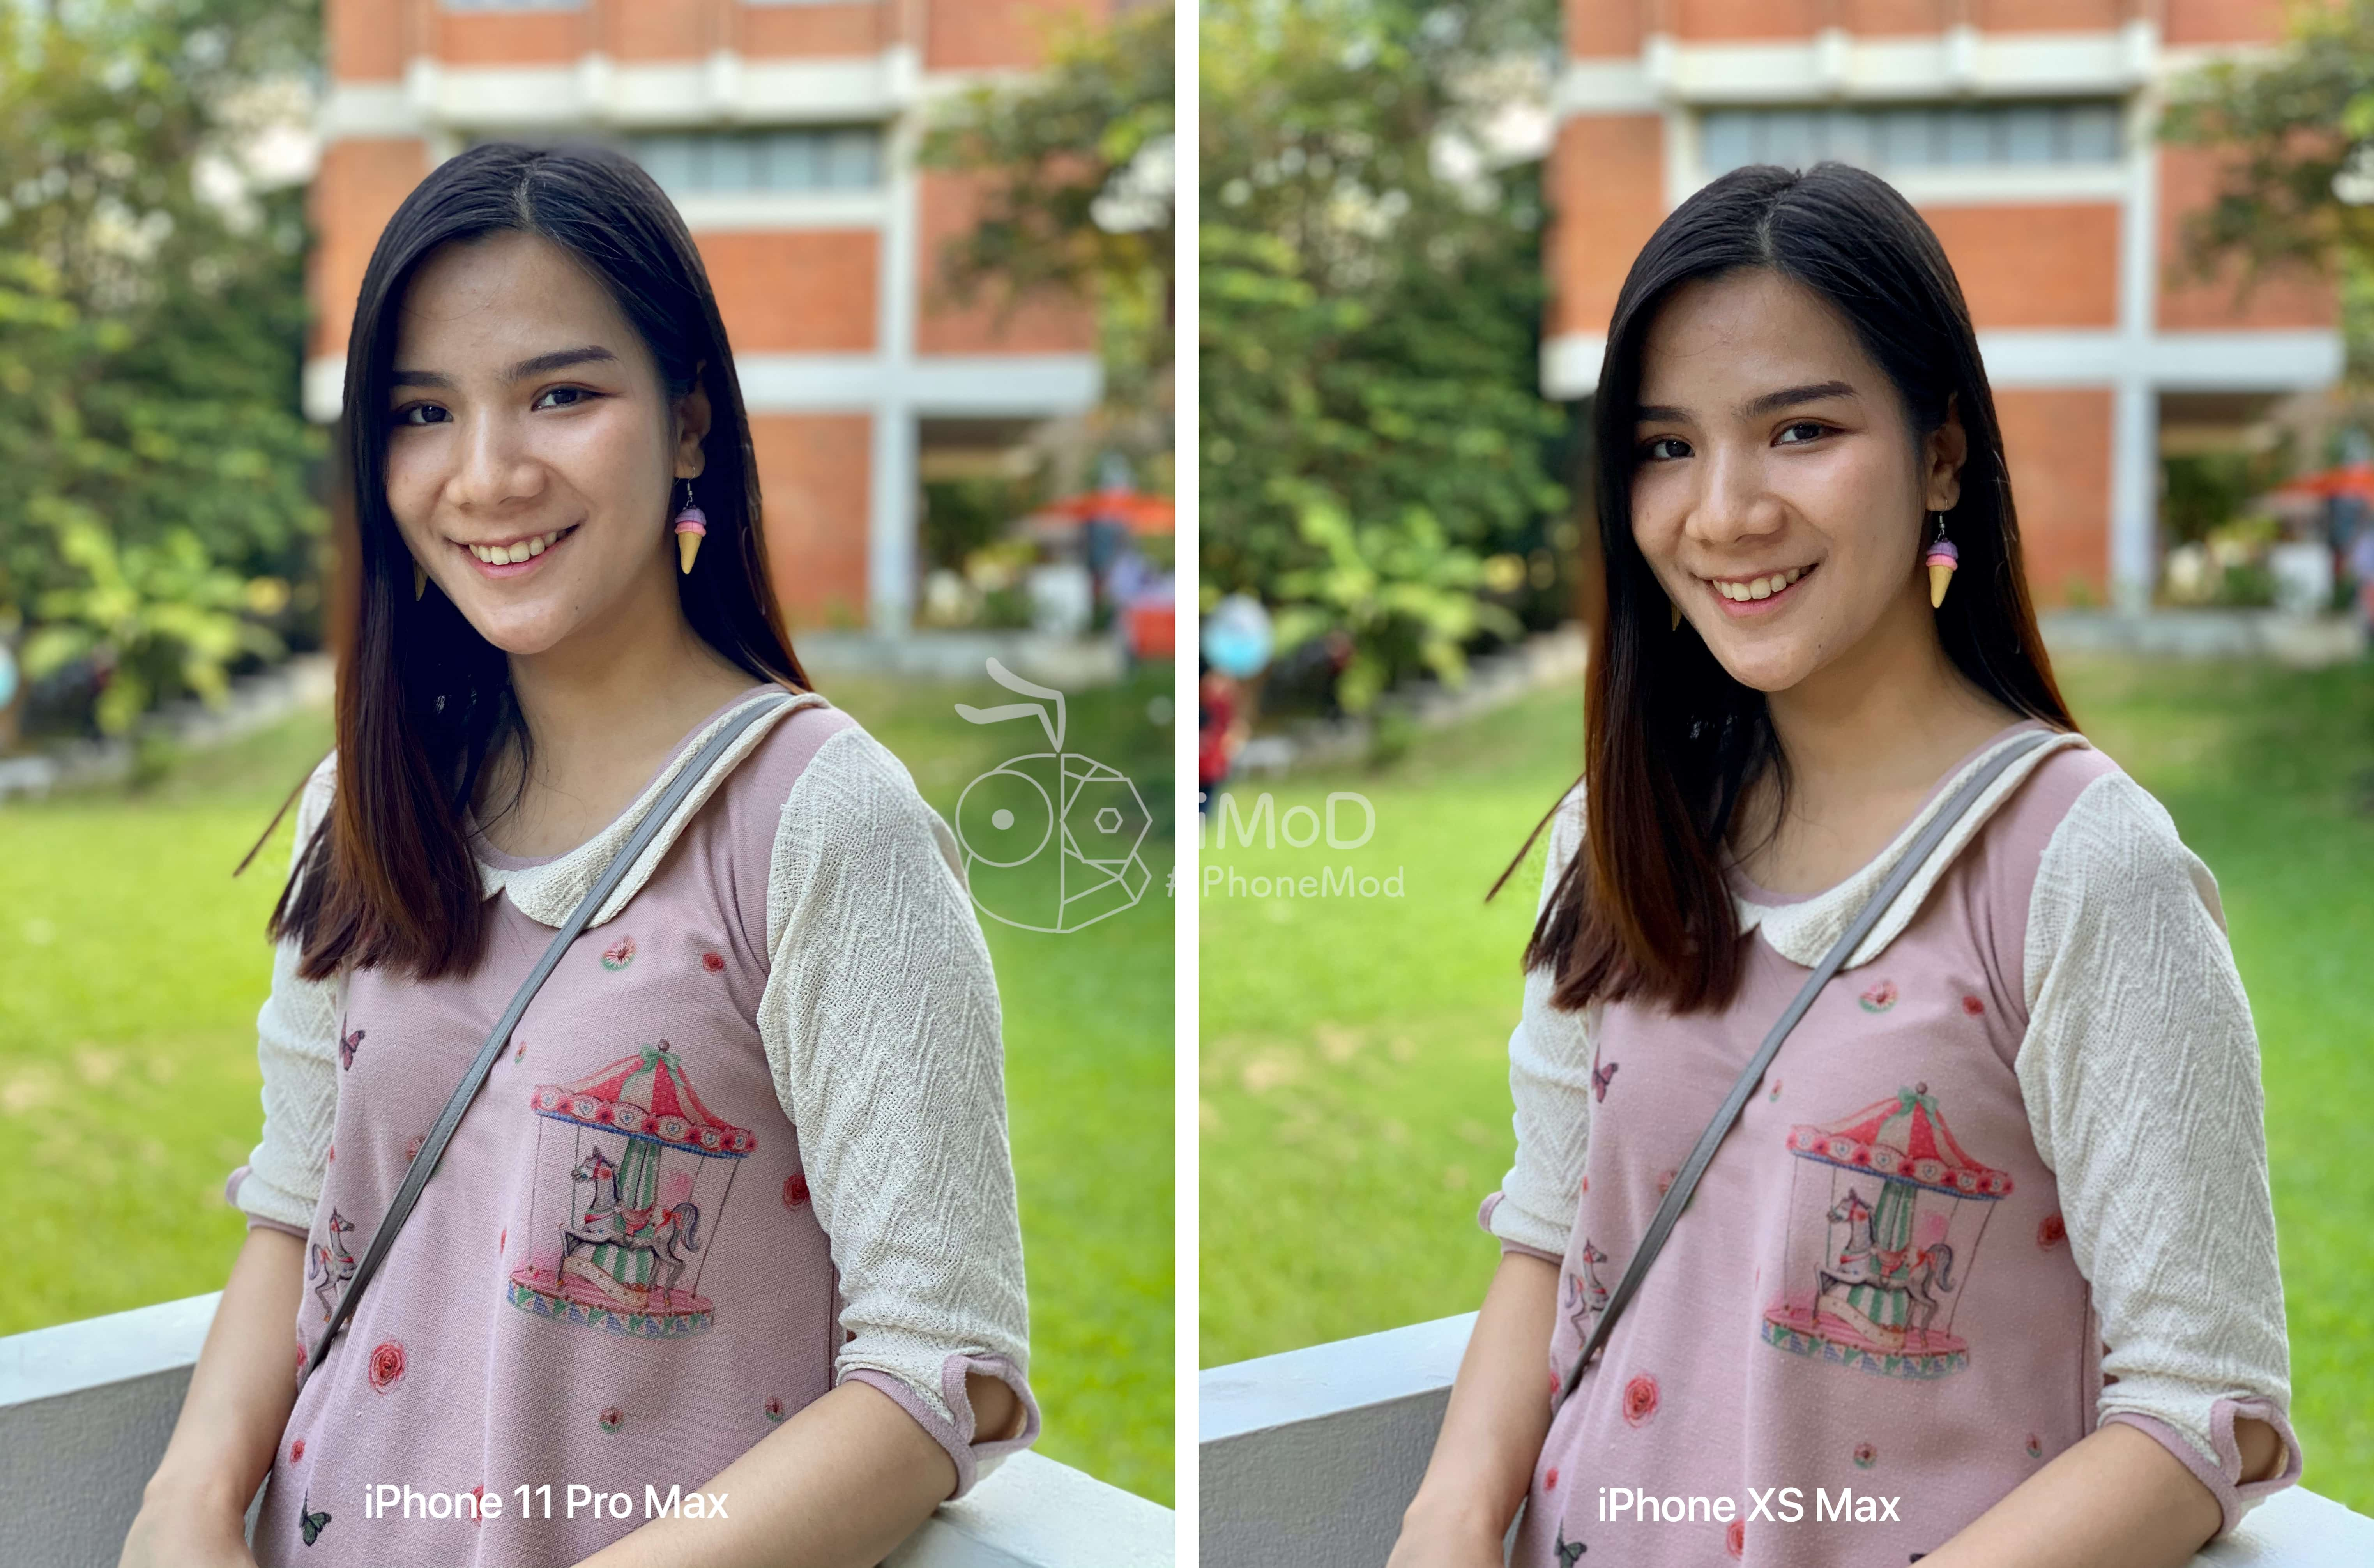 Iphone 11 Pro Max And Iphone Xs Max Portrait Compare Img 5